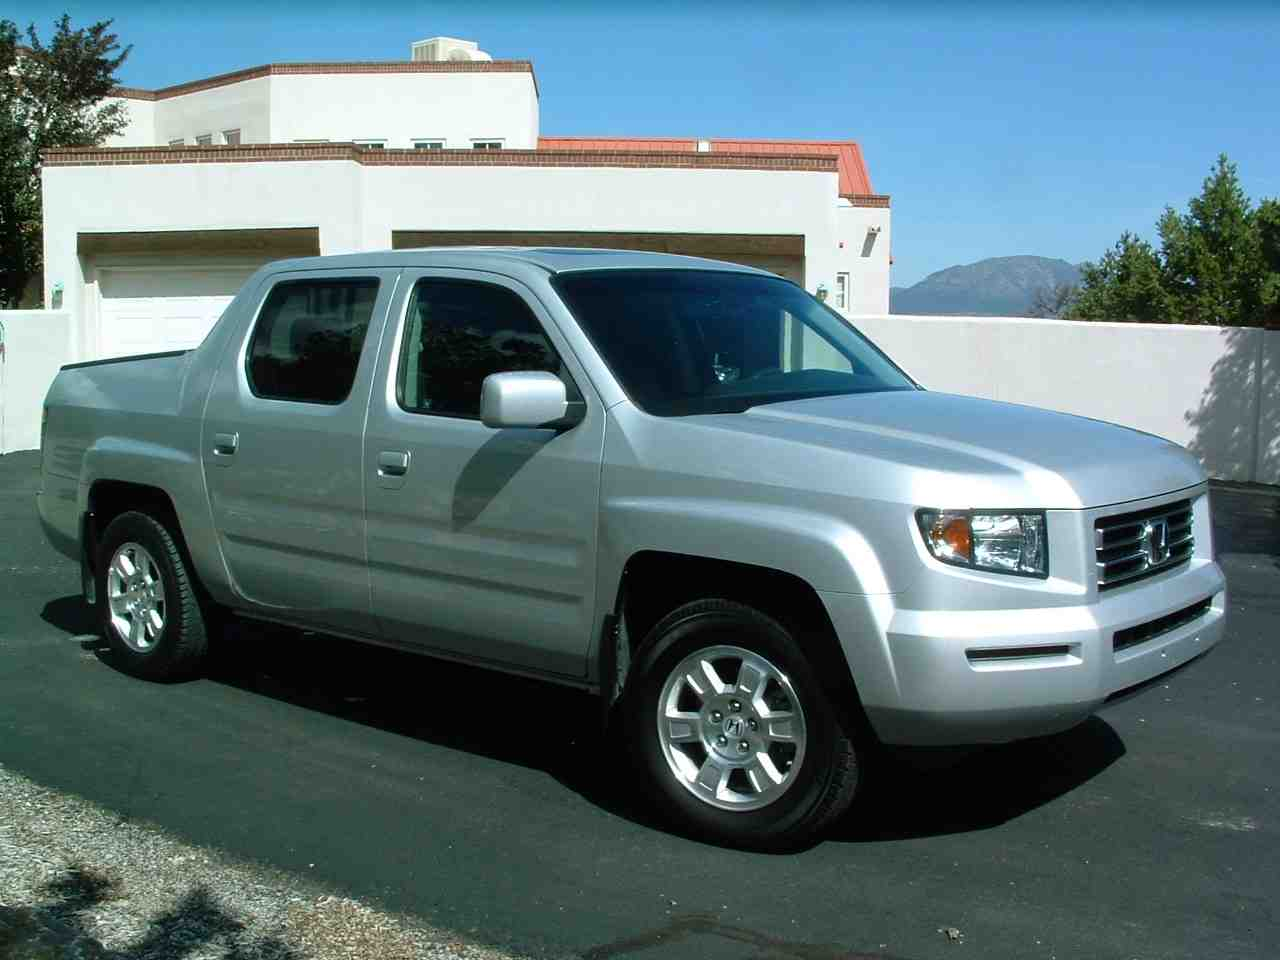 2006 Honda Ridgeline Service Manuals Browse Manual Guides 20062007 Electrical Troubleshooting Original Workshop Repair 2008 2 372 Rh Pagelarge Com